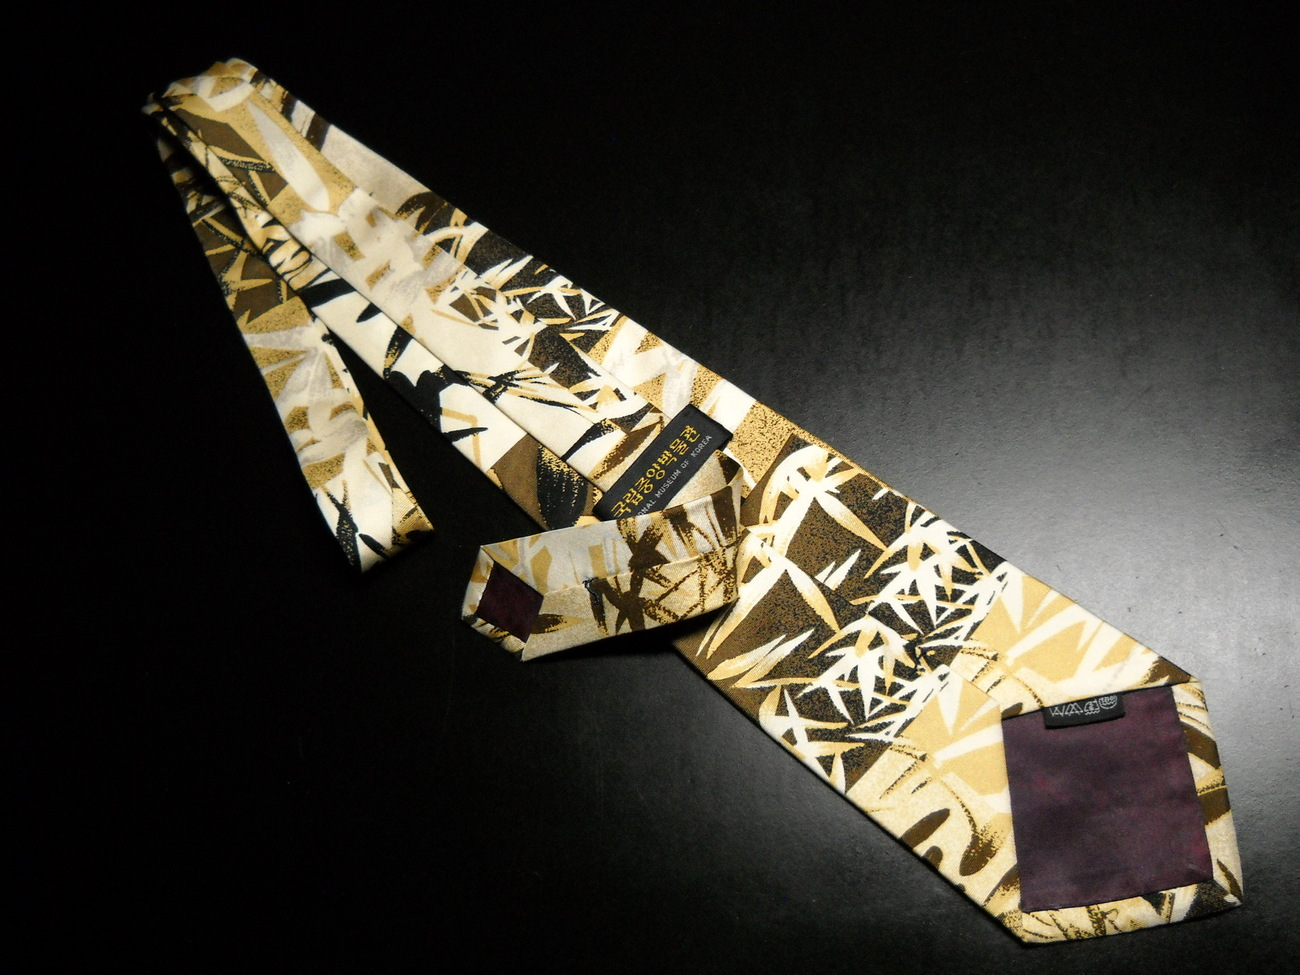 National Museum of Korea Dress Silk Neck Tie Bamboo Forest in Browns and Golds